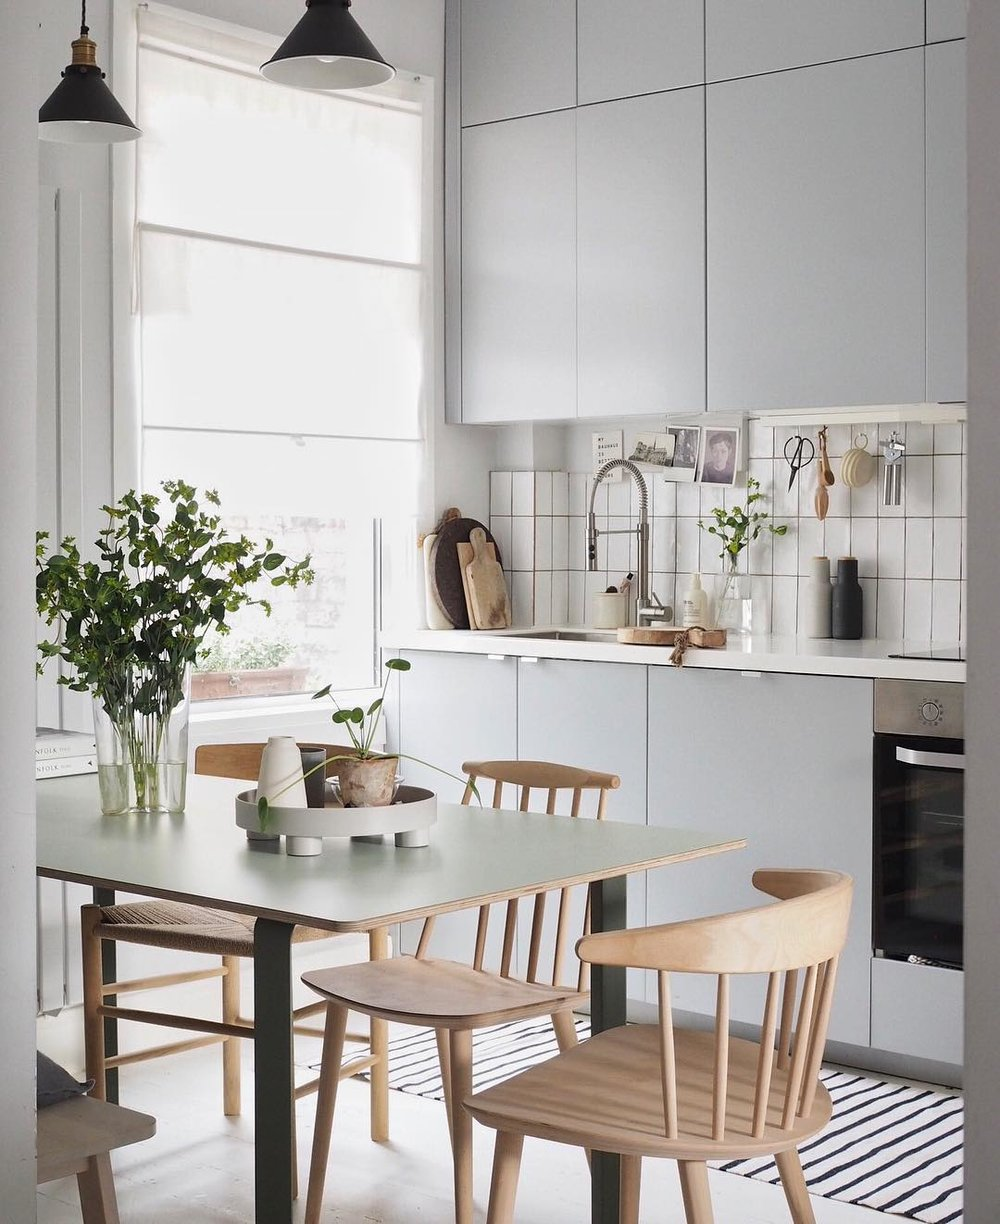 Cate St Hill's calming kitchen - Image credit Cate St Hill